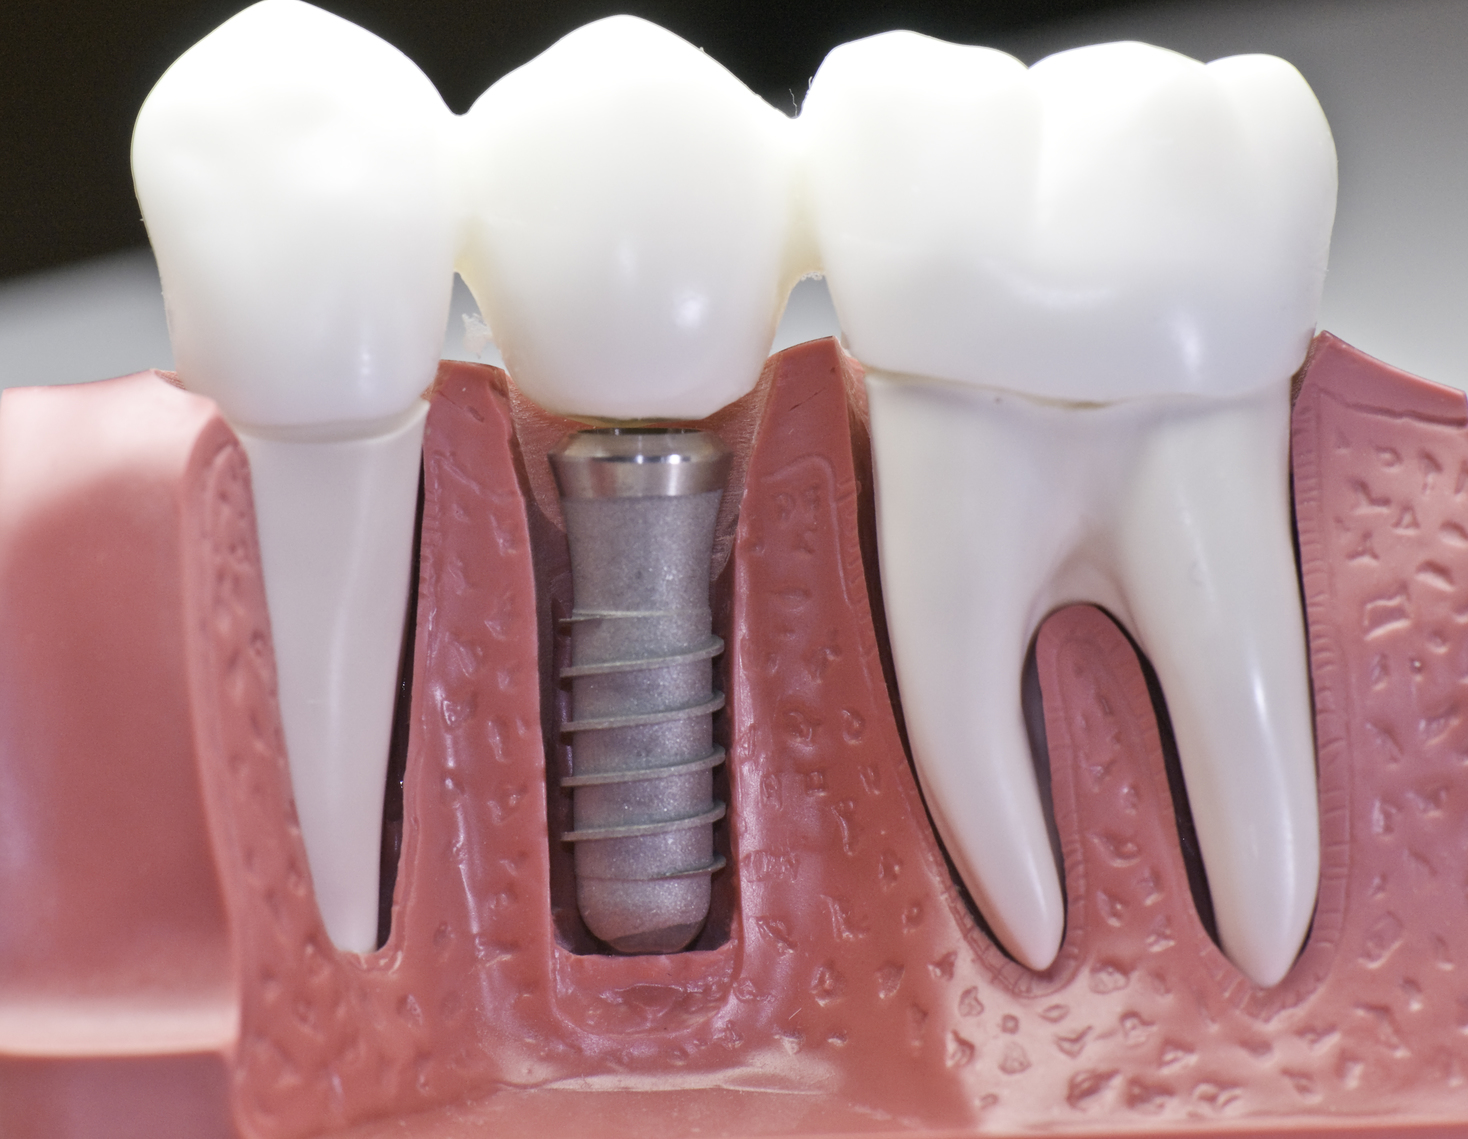 Dental Implants: 3 Myths Debunked